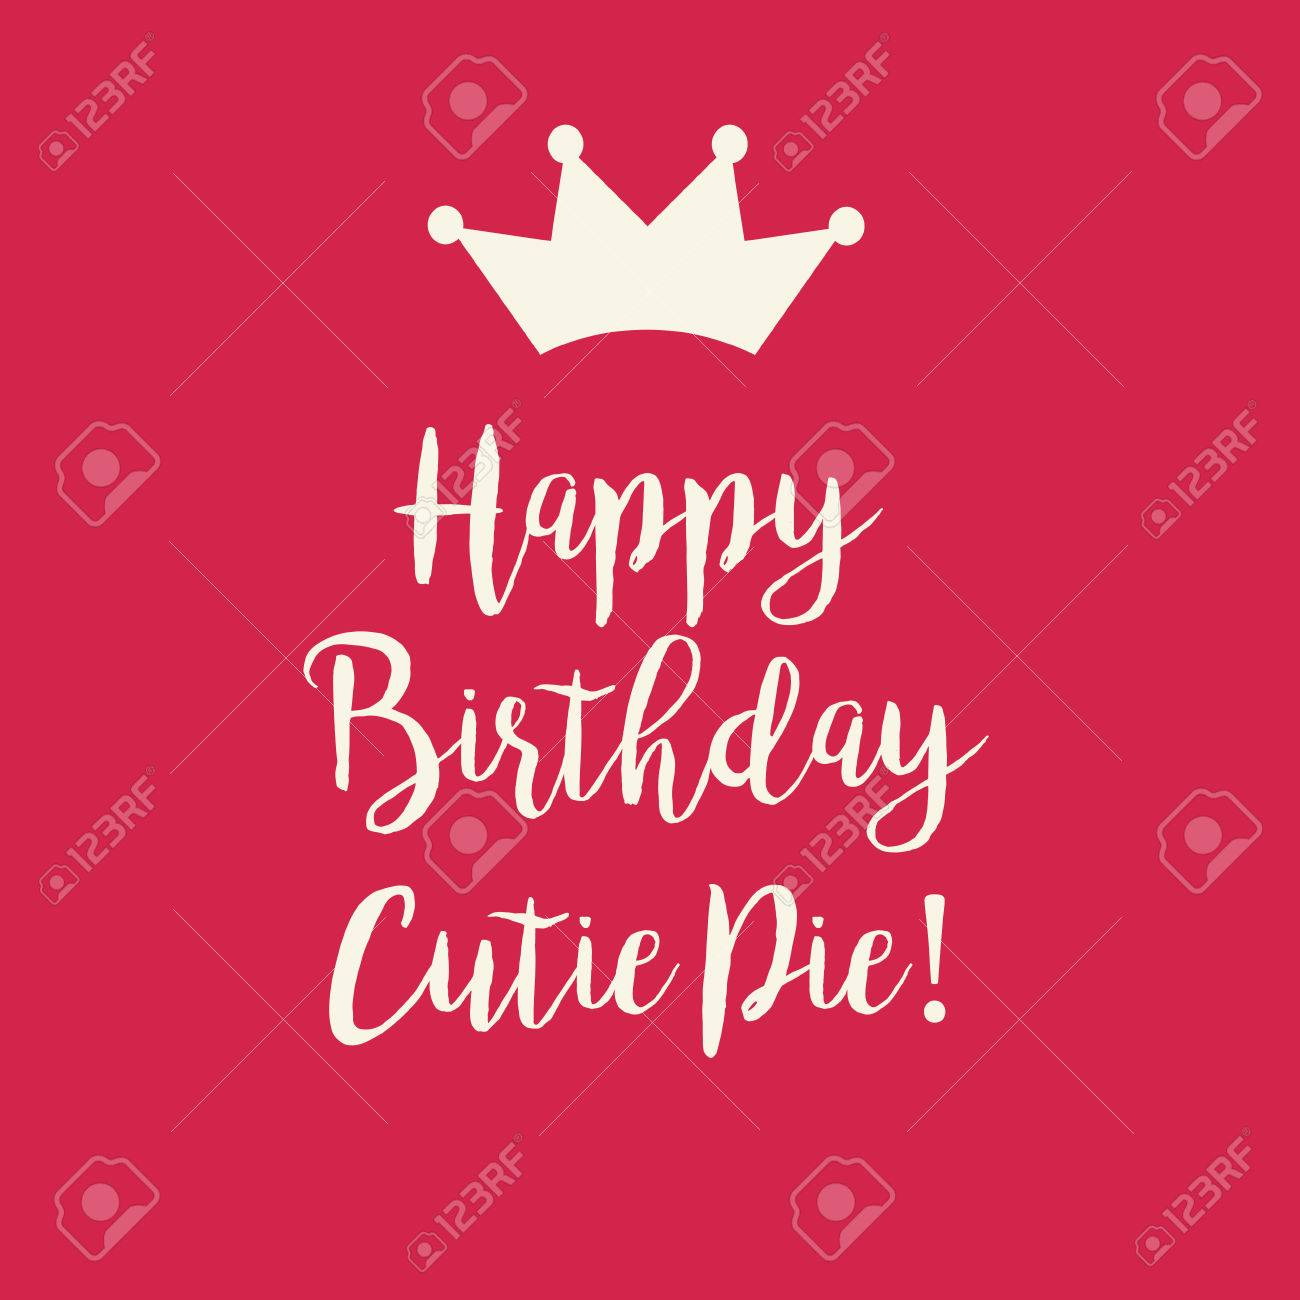 happy birthday cutie pie ; 60130744-cute-happy-birthday-cutie-pie-card-with-a-text-and-a-princess-crown-on-a-red-pink-background-